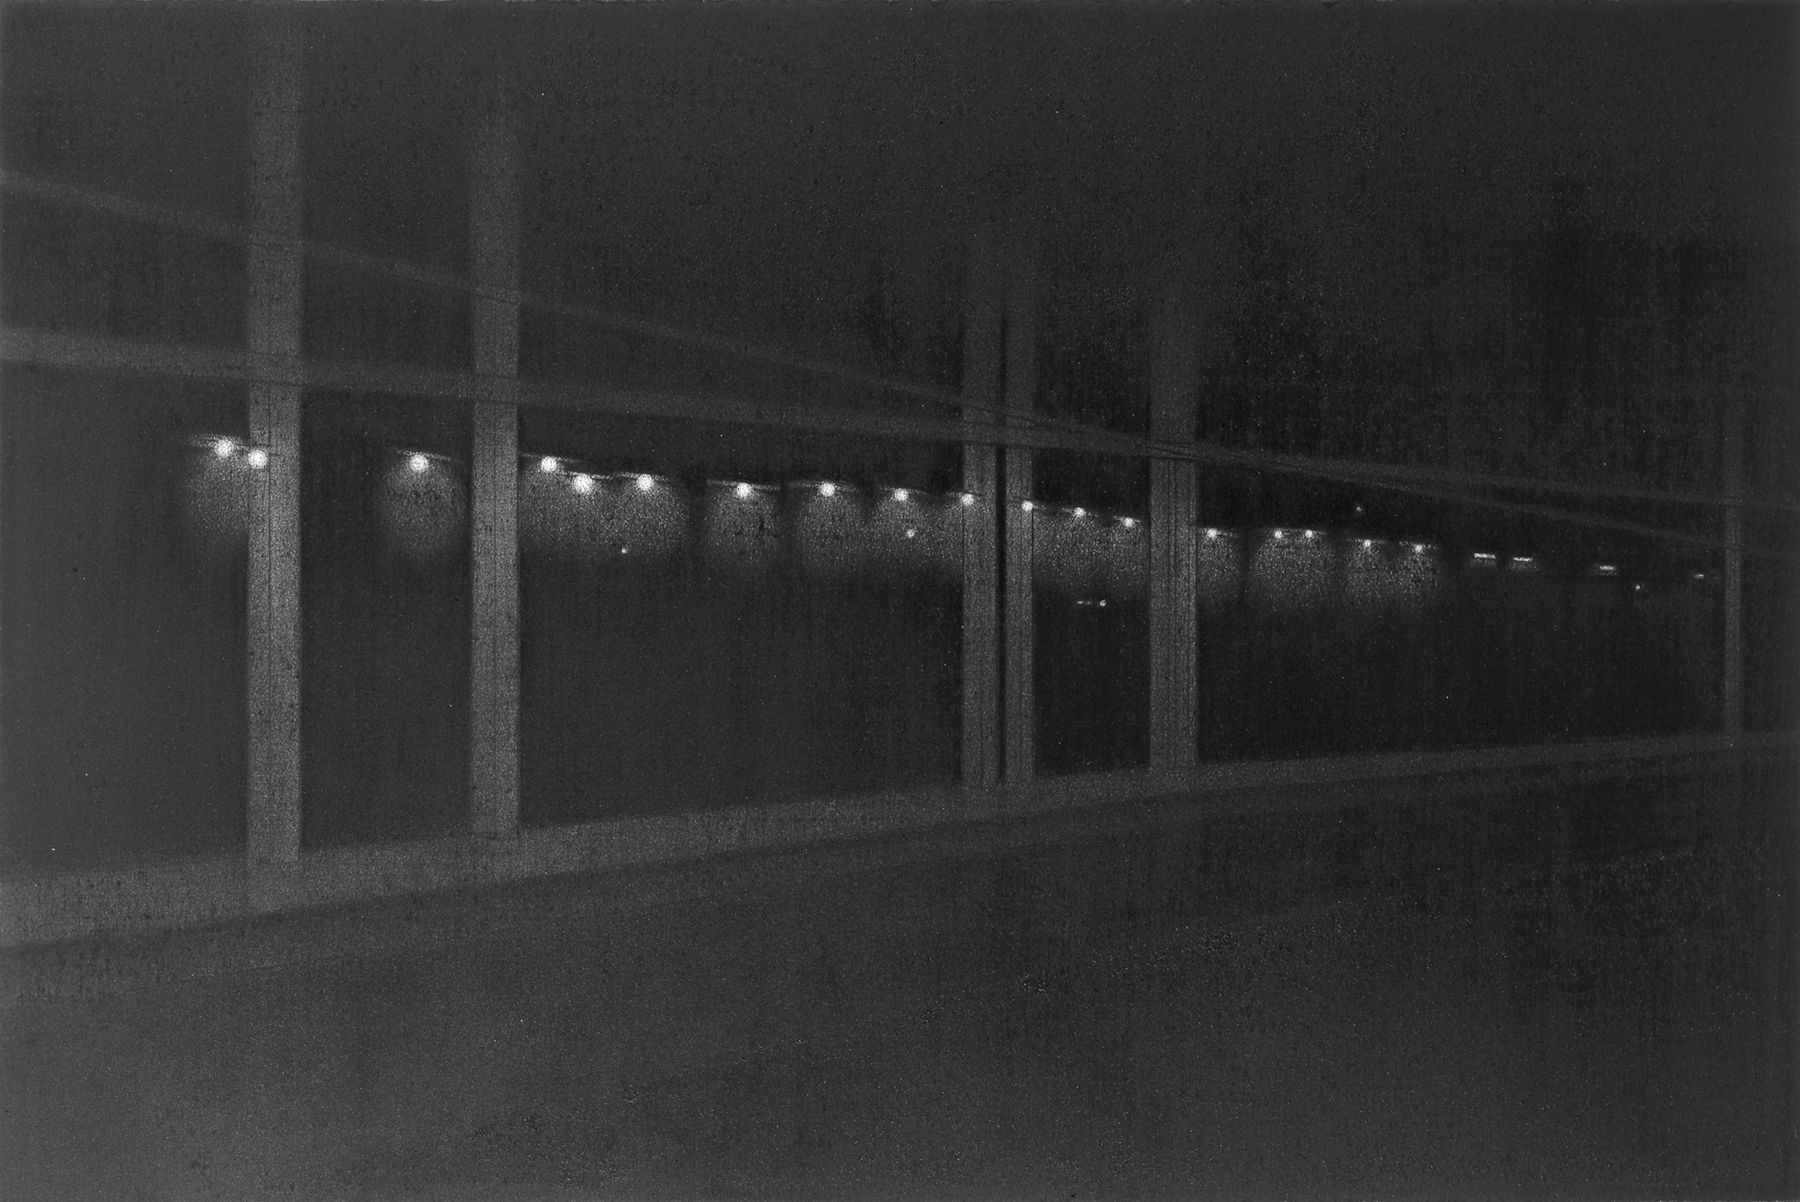 anthony mitri, 10:37 P.M., Penn Station, NY, NY, 2006, charcoal on paper, 12 1/4 x 18 3/8 inches